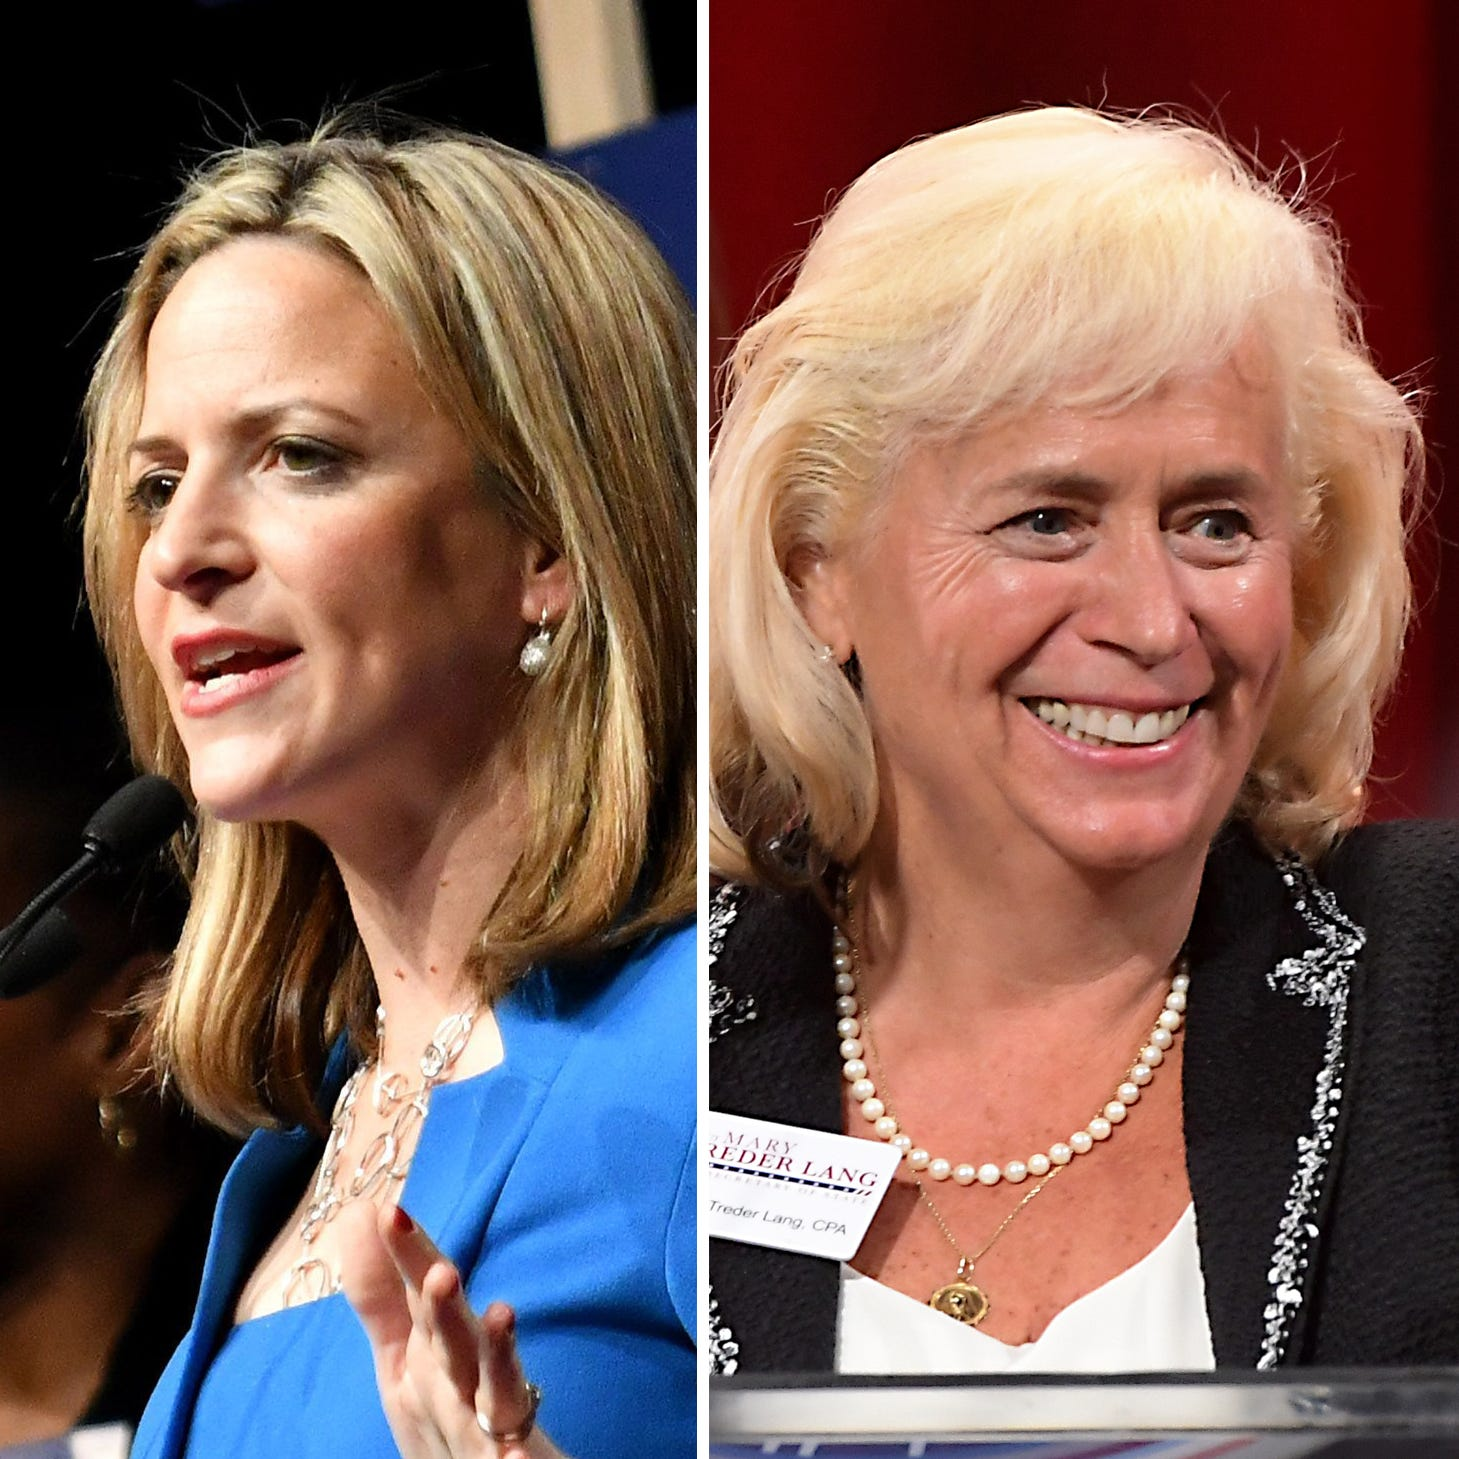 Jocelyn Benson, Mary Treder Lang clash on SOS reforms, voting changes